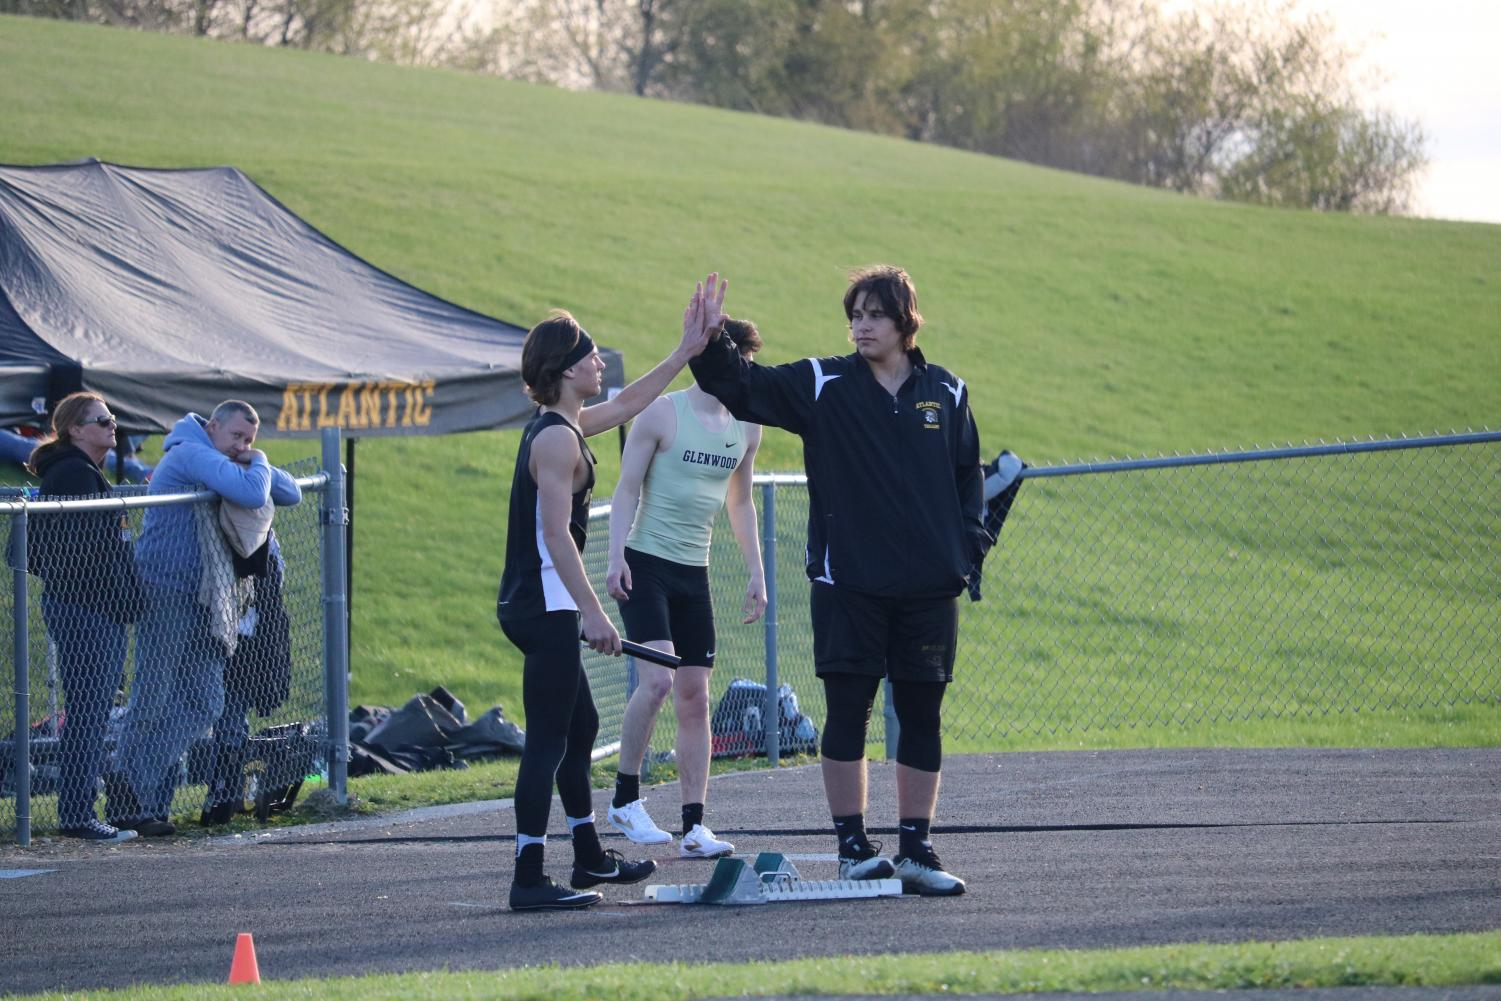 GIMME FIVE - Junior Cale Roller gives sophomore Joe Weaver a good-luck high five before he competes in his race. Roller can often be seen on the throwing field, while Weaver competes in various hurdle events.